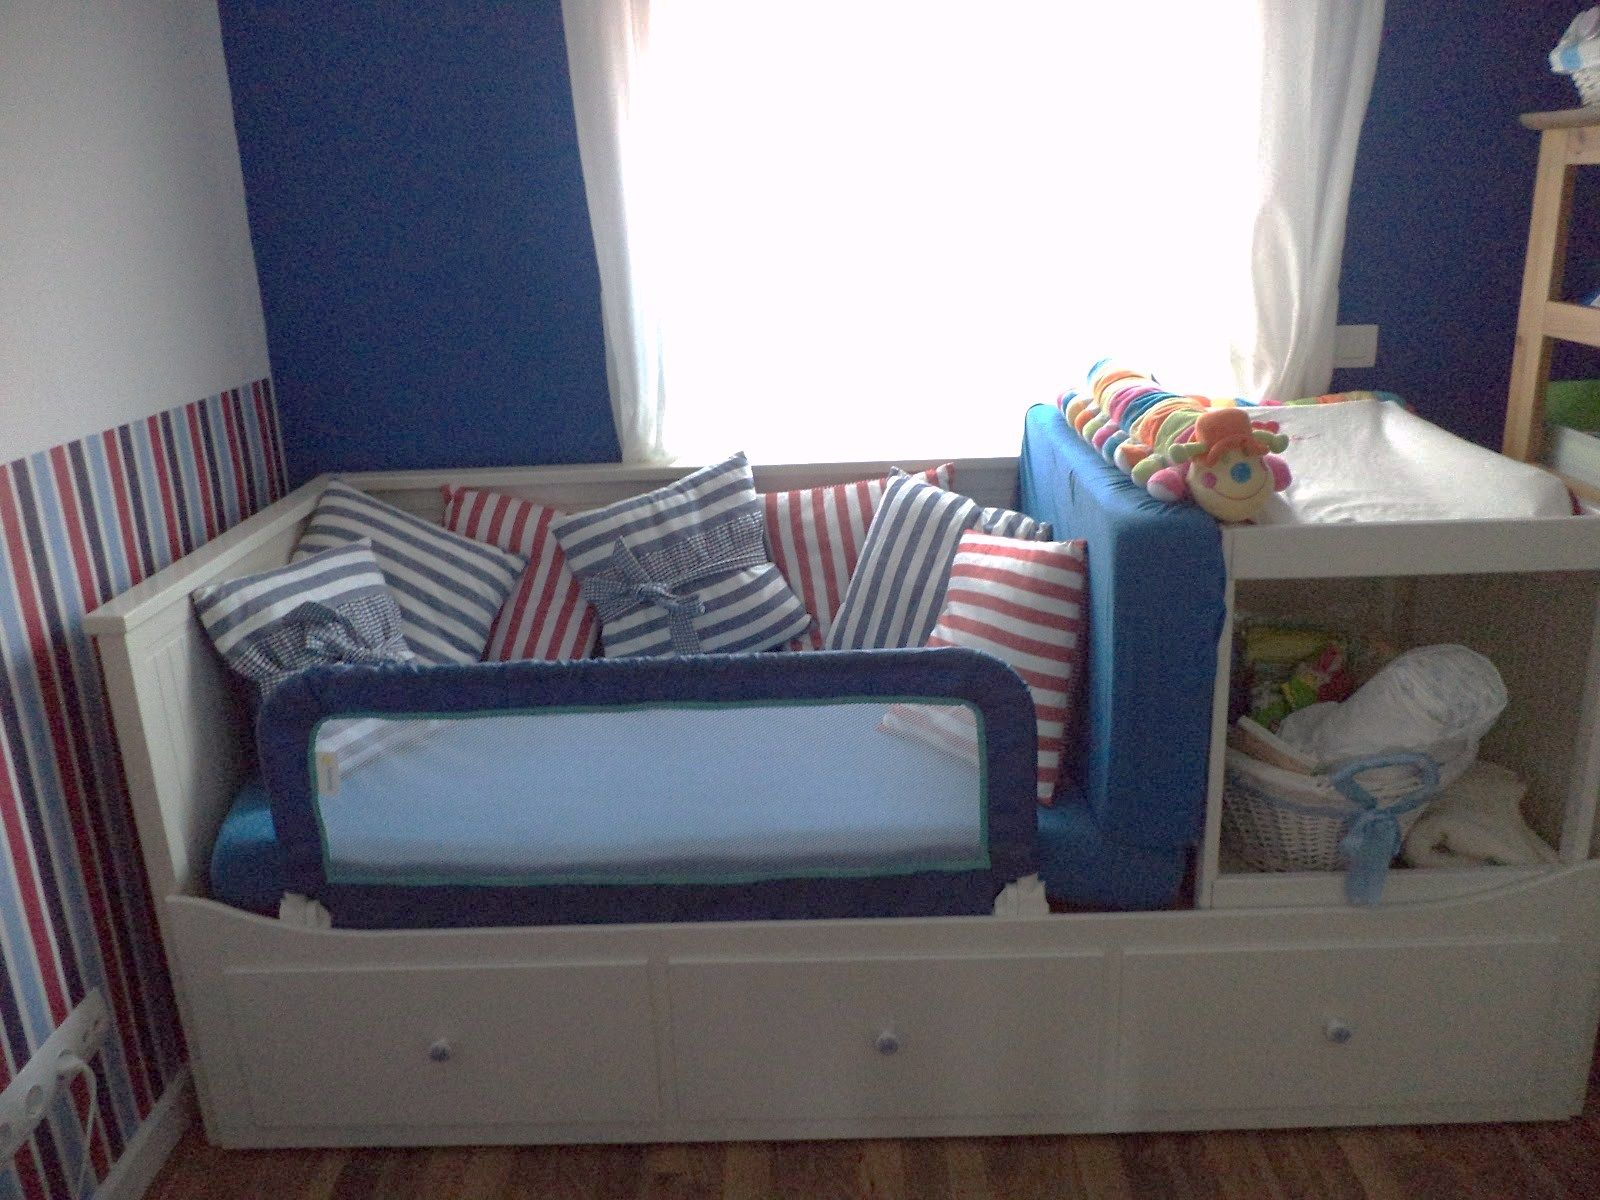 Ikea hack kinderbett  Ideas Daybed Ikea Hack With In Place It Reverts Back To Being A ...